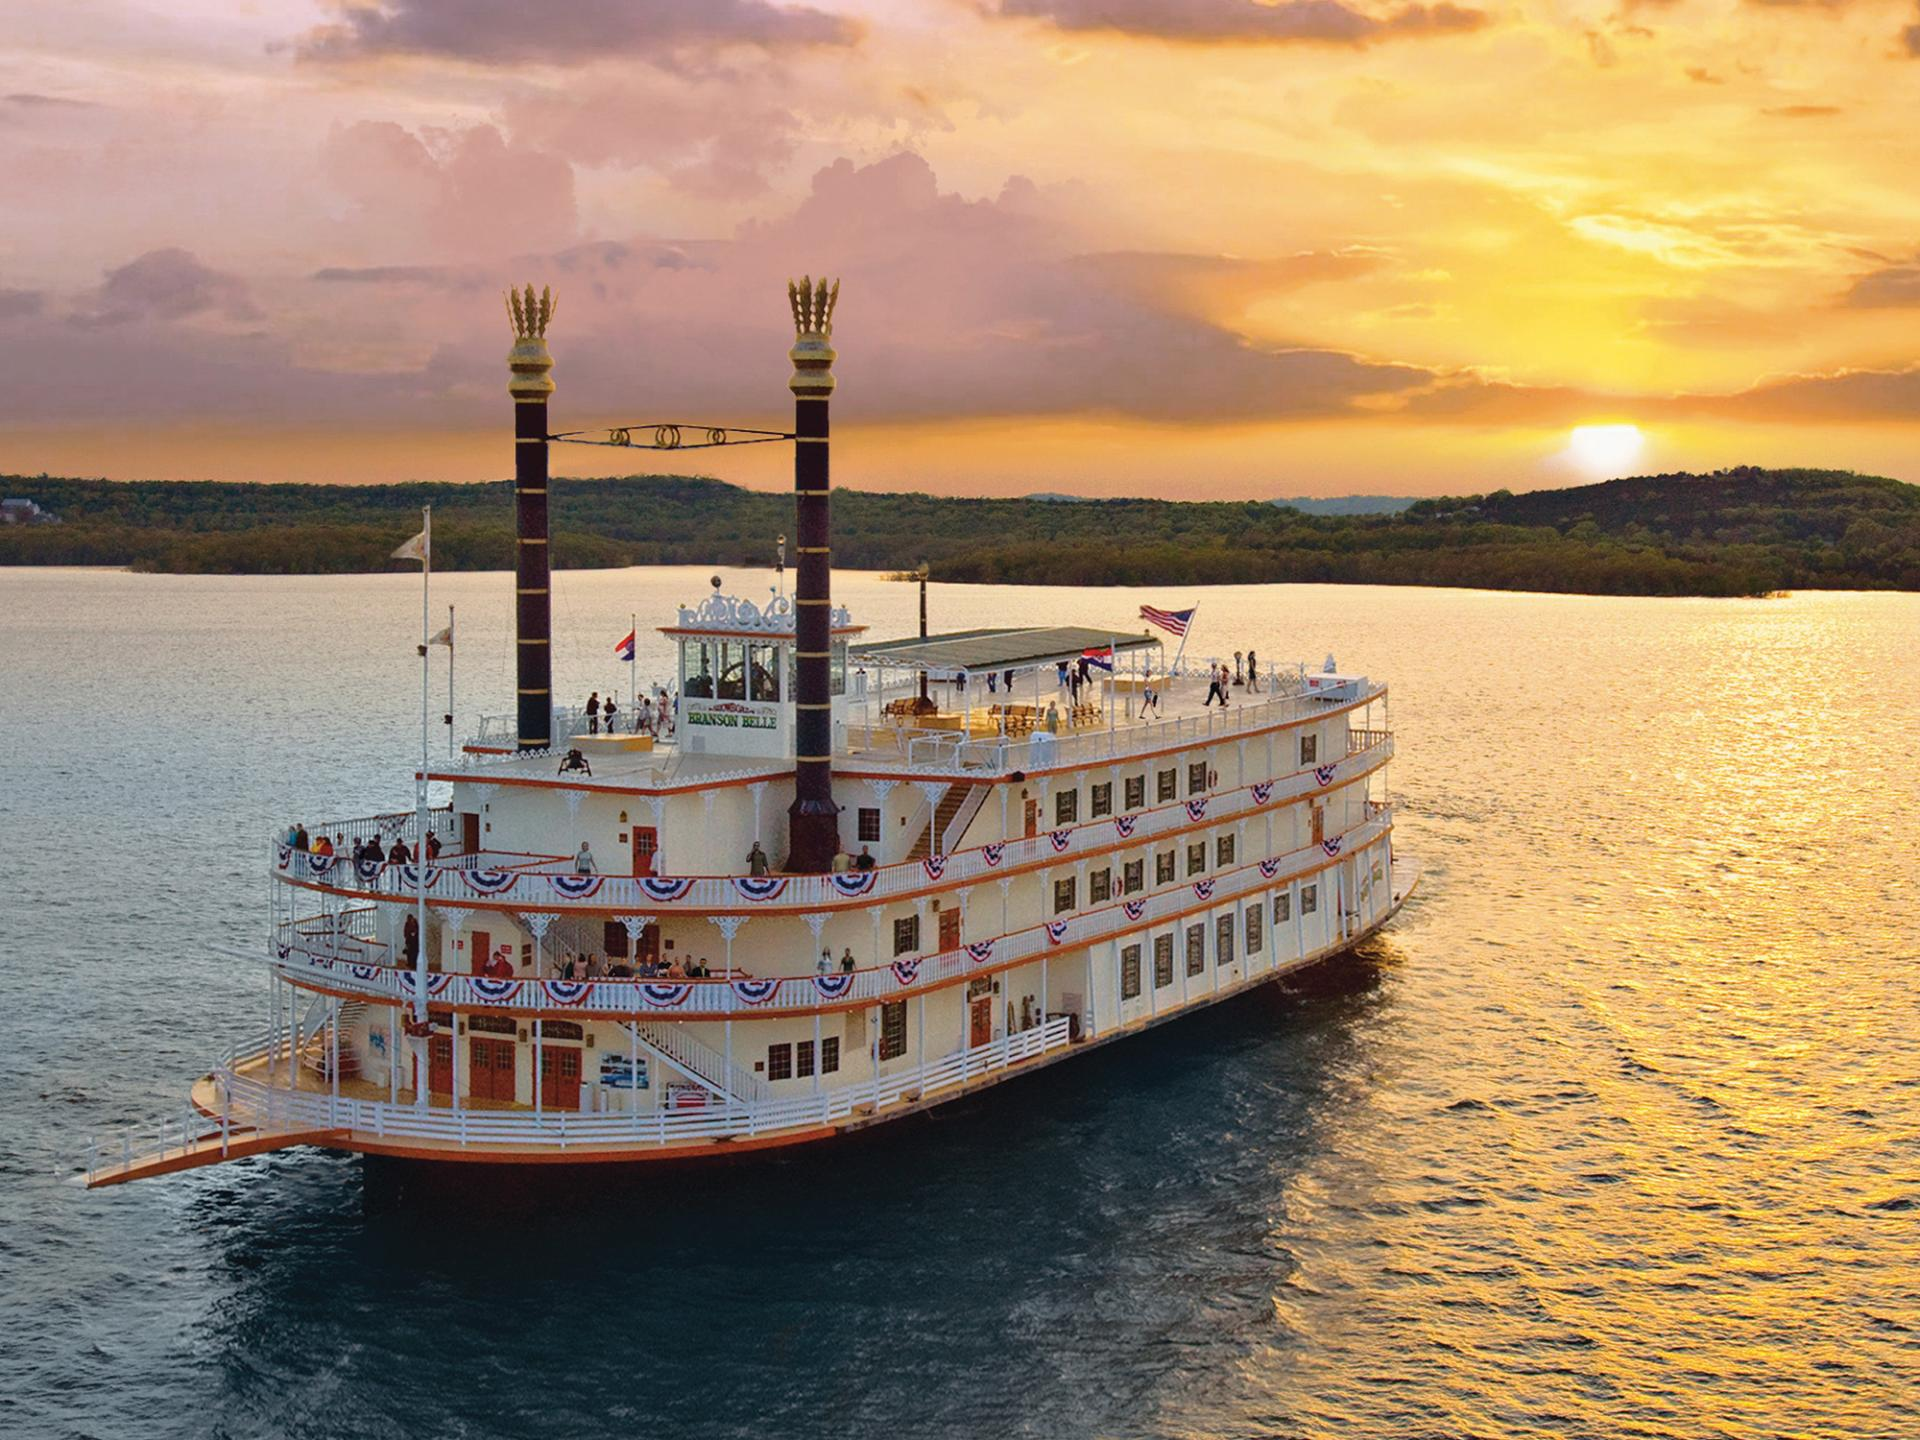 Sunset behind Showboat Branson Belle on the lake.